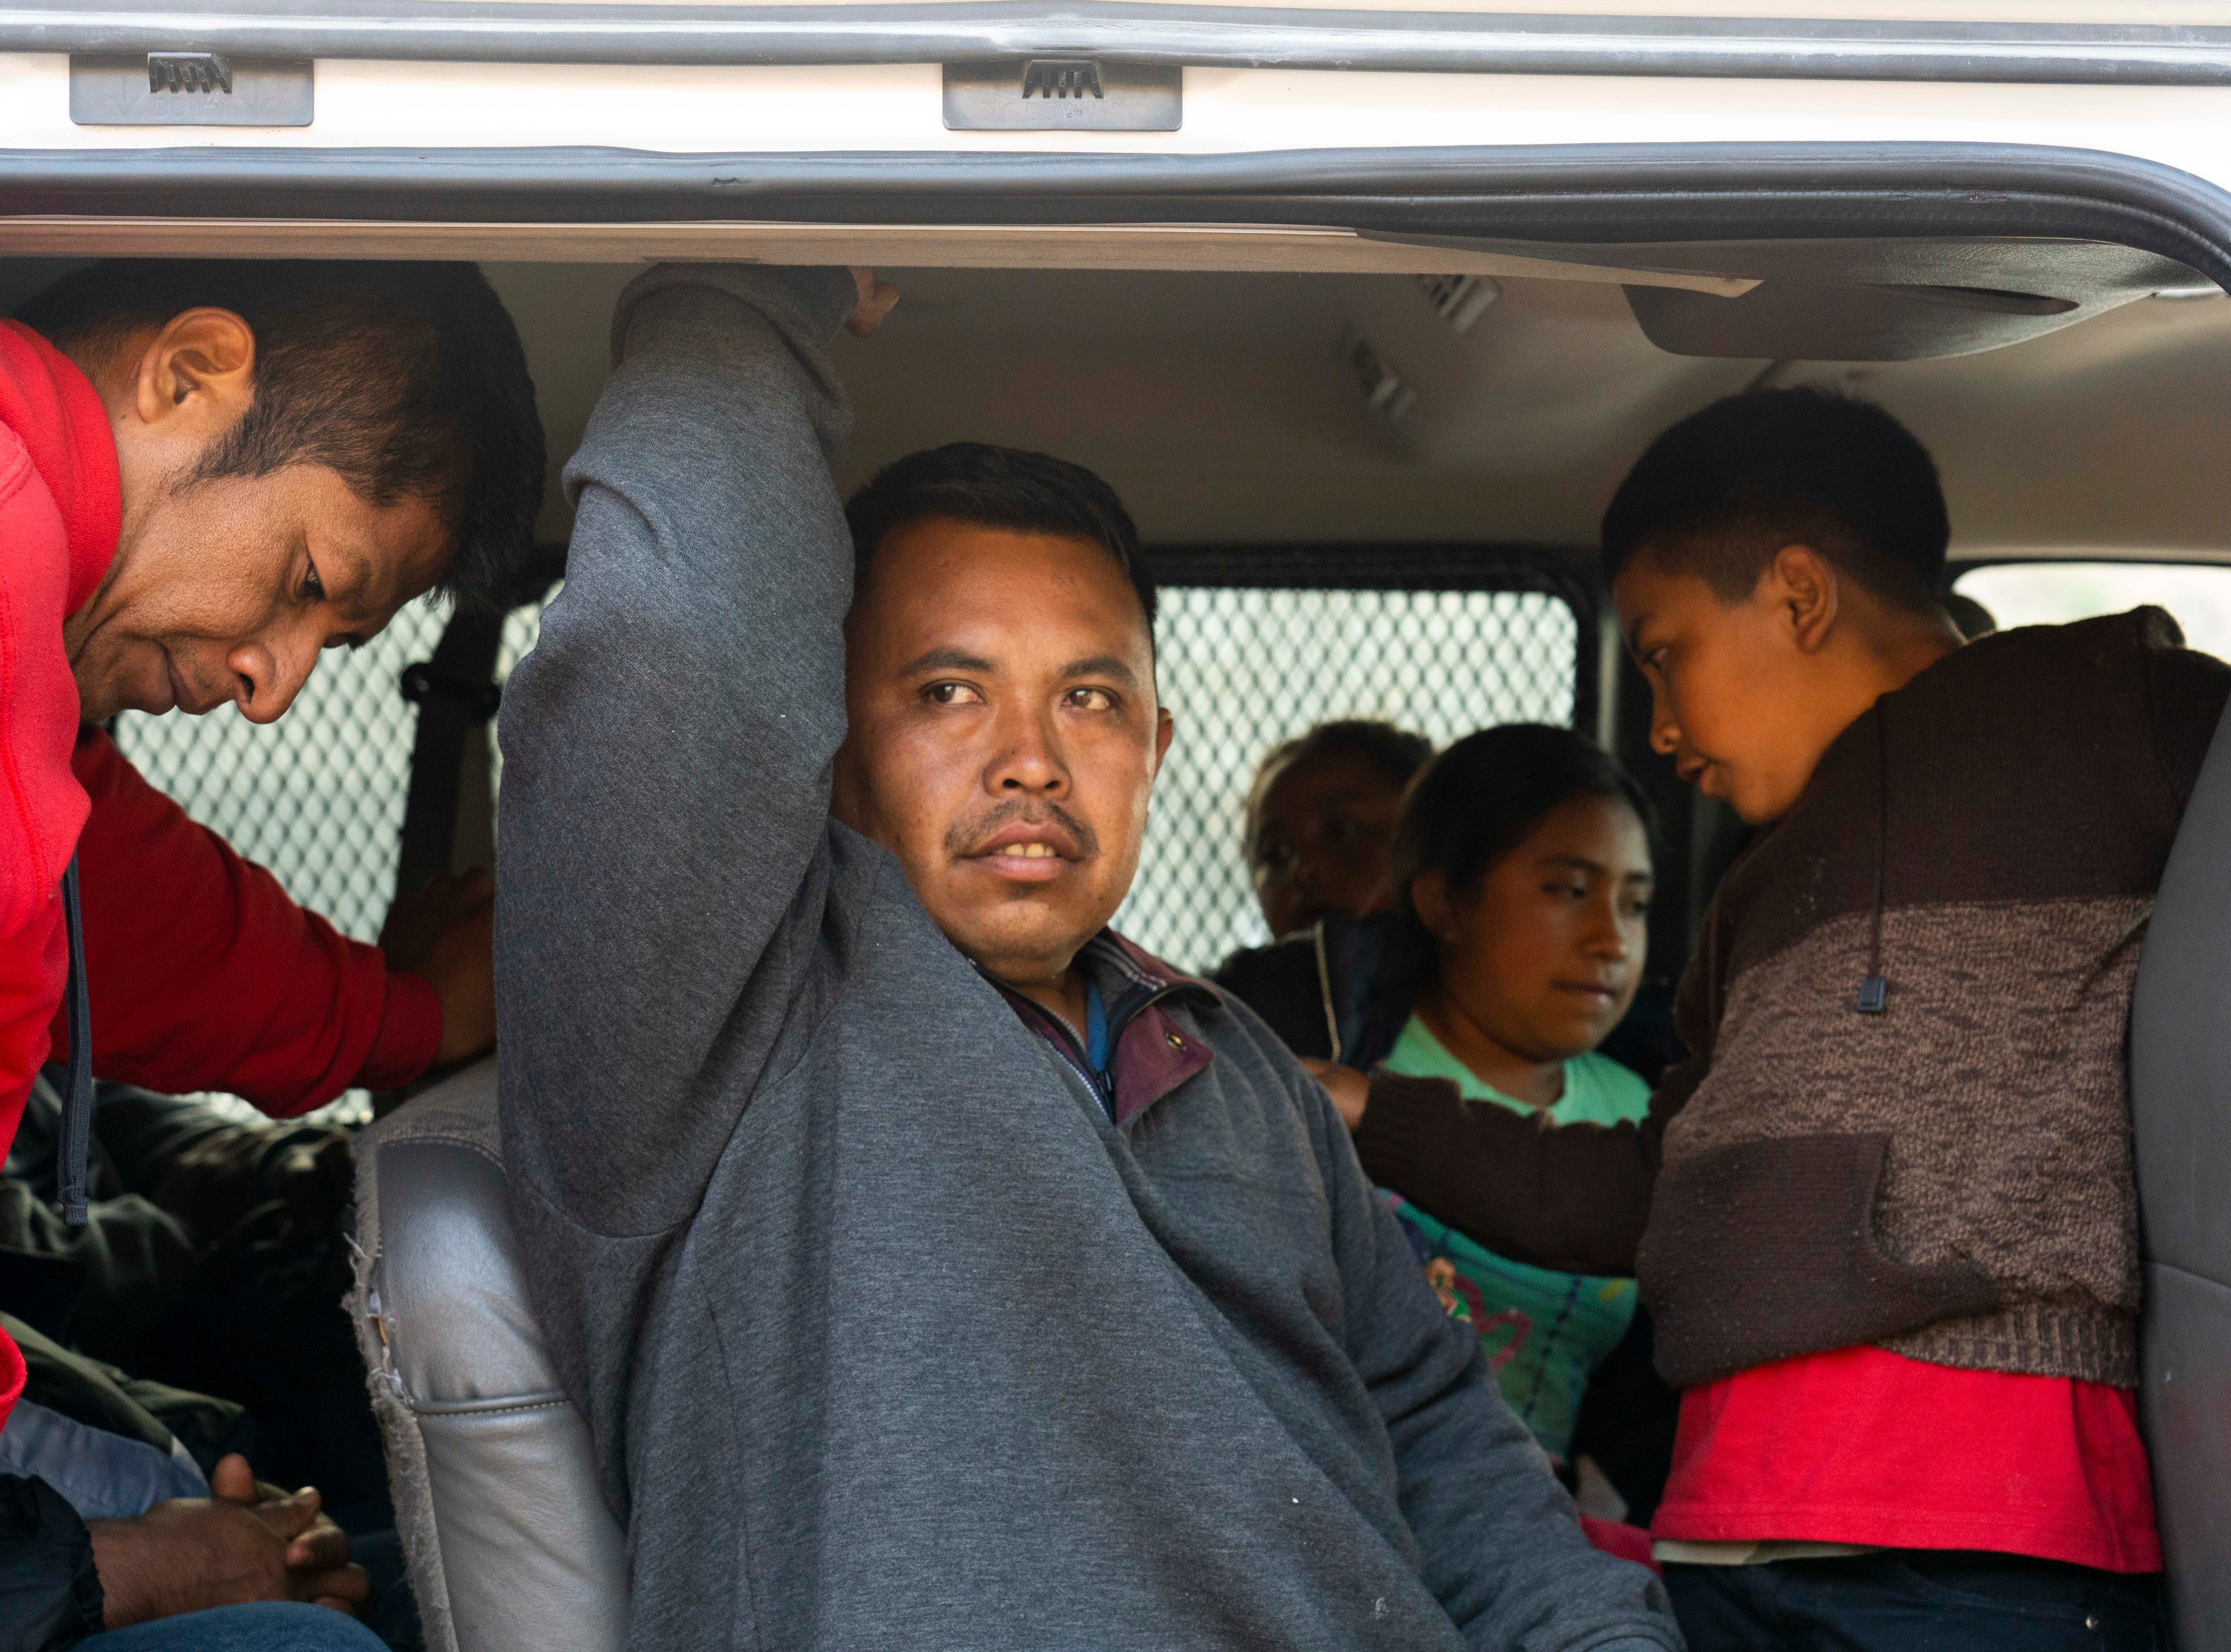 Migrants arrive at Kino Border Initiative shelter in Sonora, Mexico after being deported from the United States on Jan. 18, 2019.